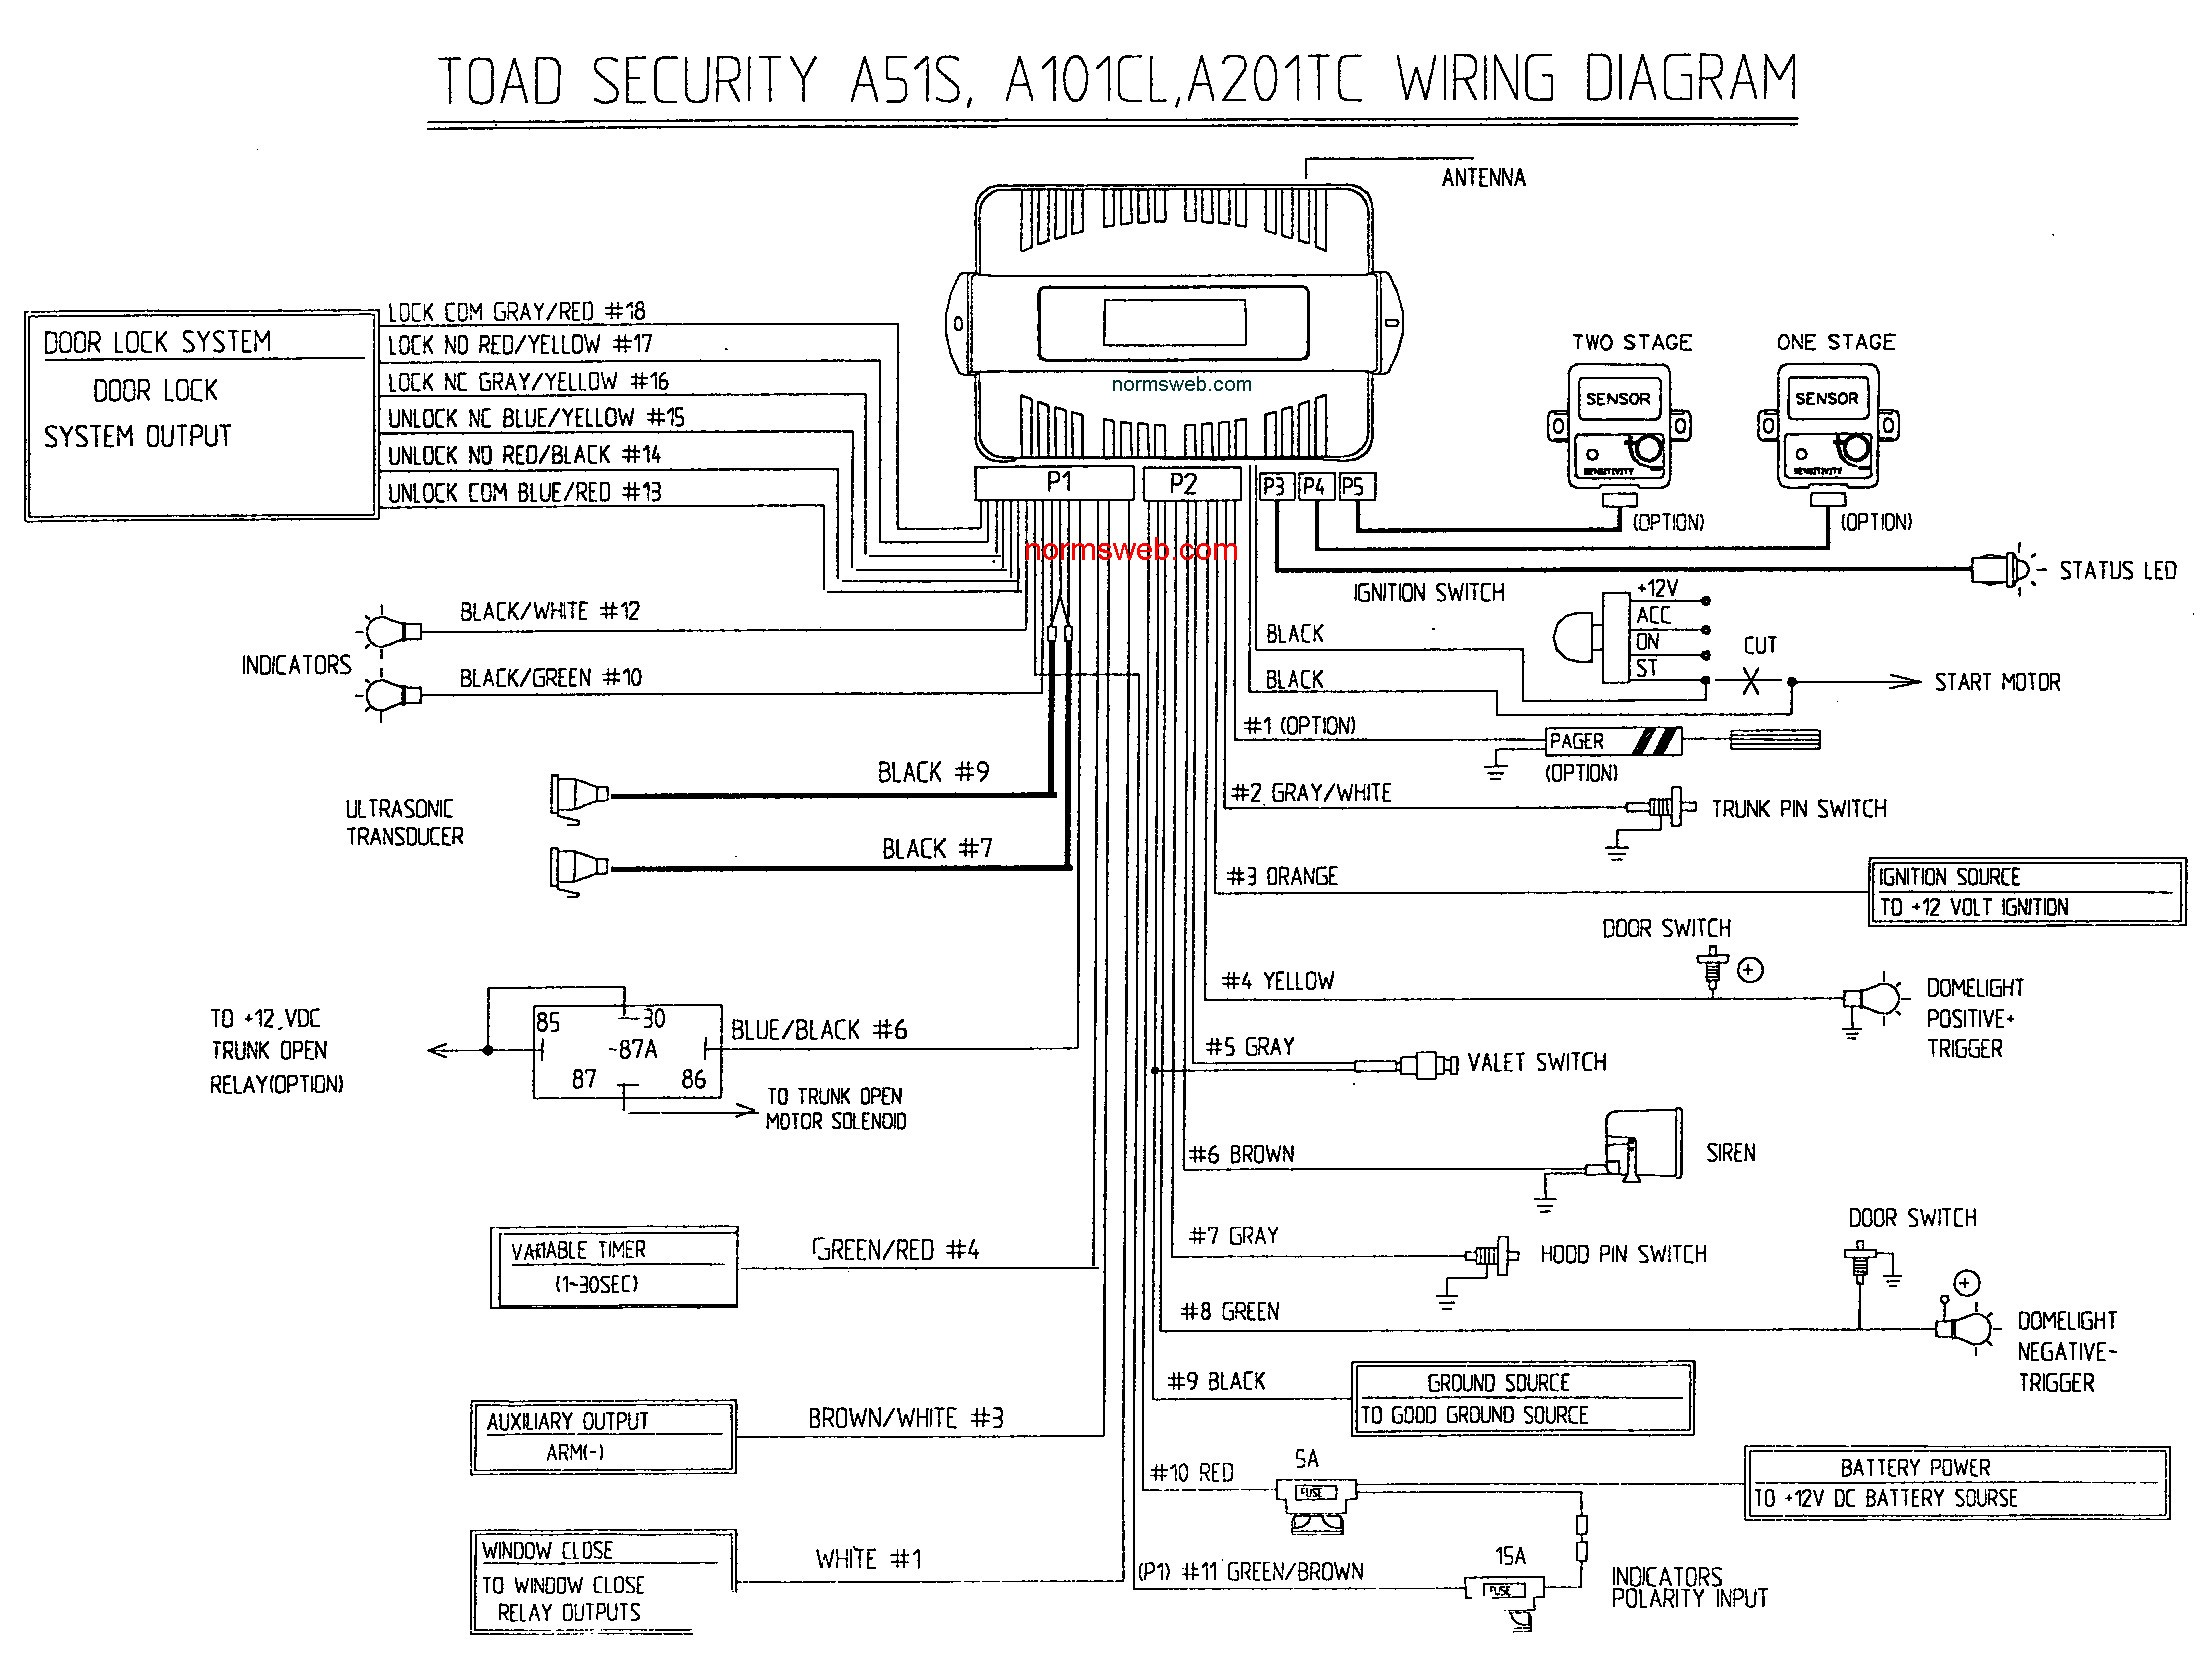 viper alarm wiring diagram 791xv how to find the intersection in a venn 5706v best of image